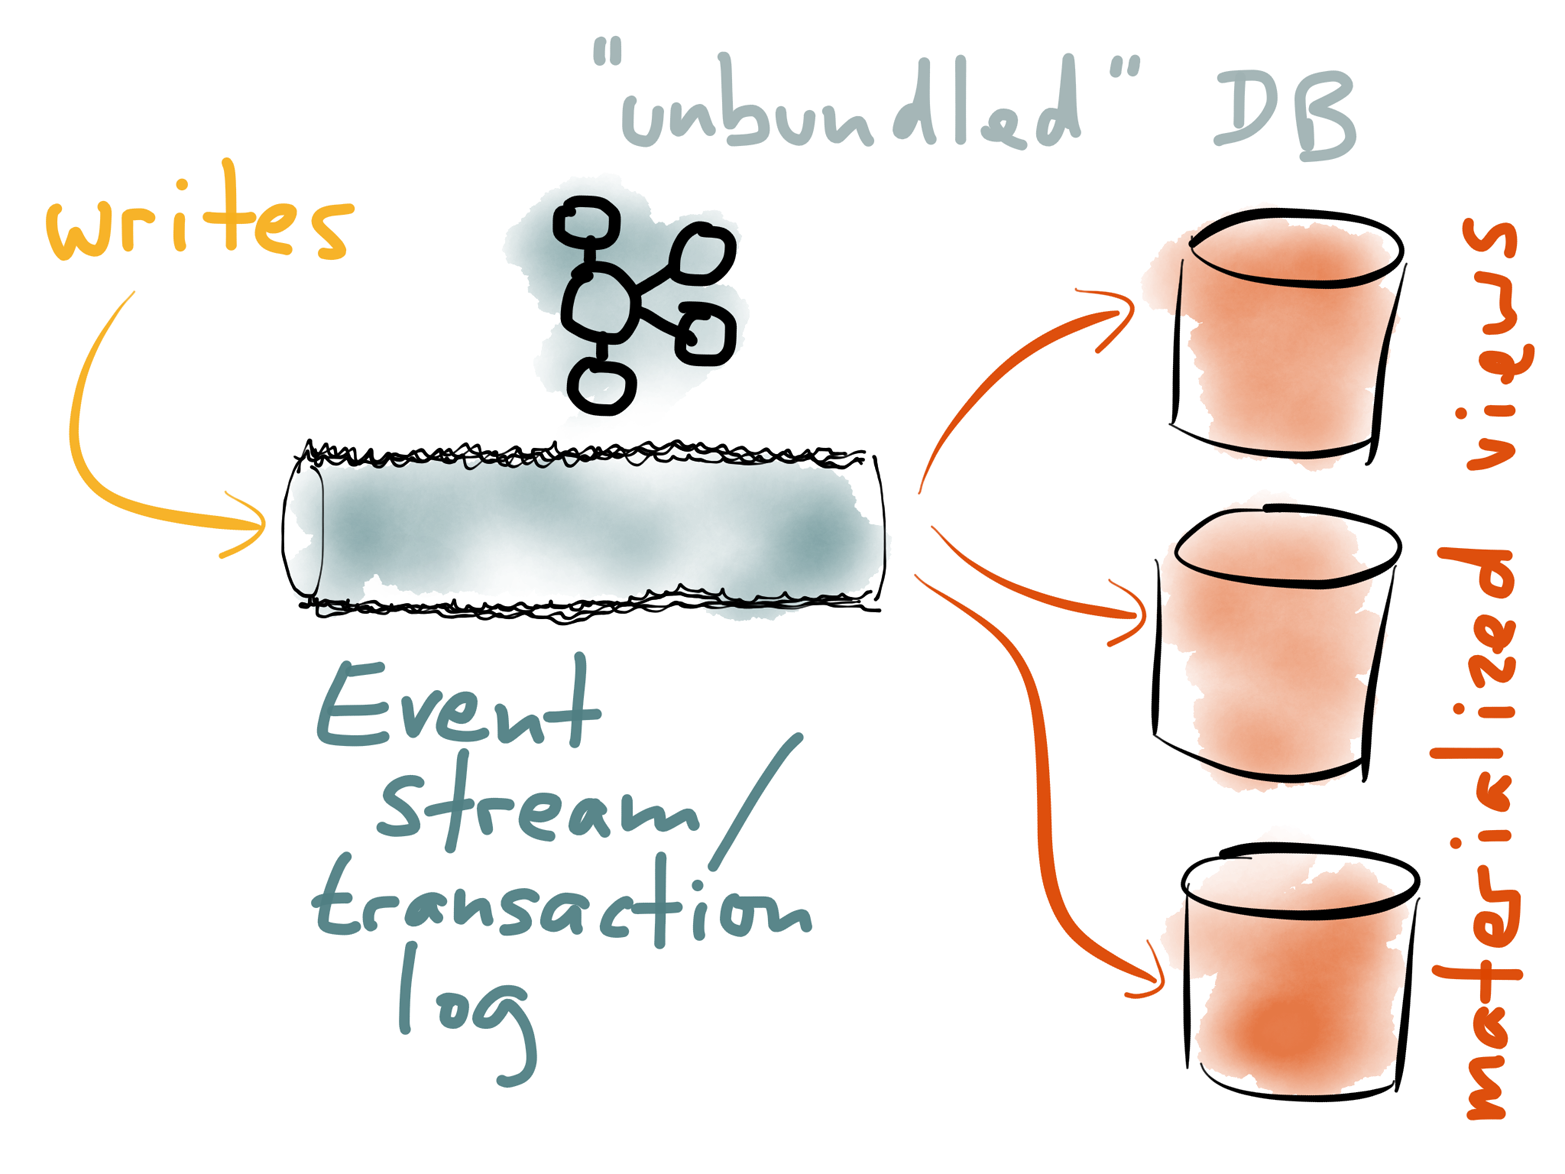 Updating indexes and materialized views based on writes in a log: more or less what a traditional database already does internally, at smaller scale.